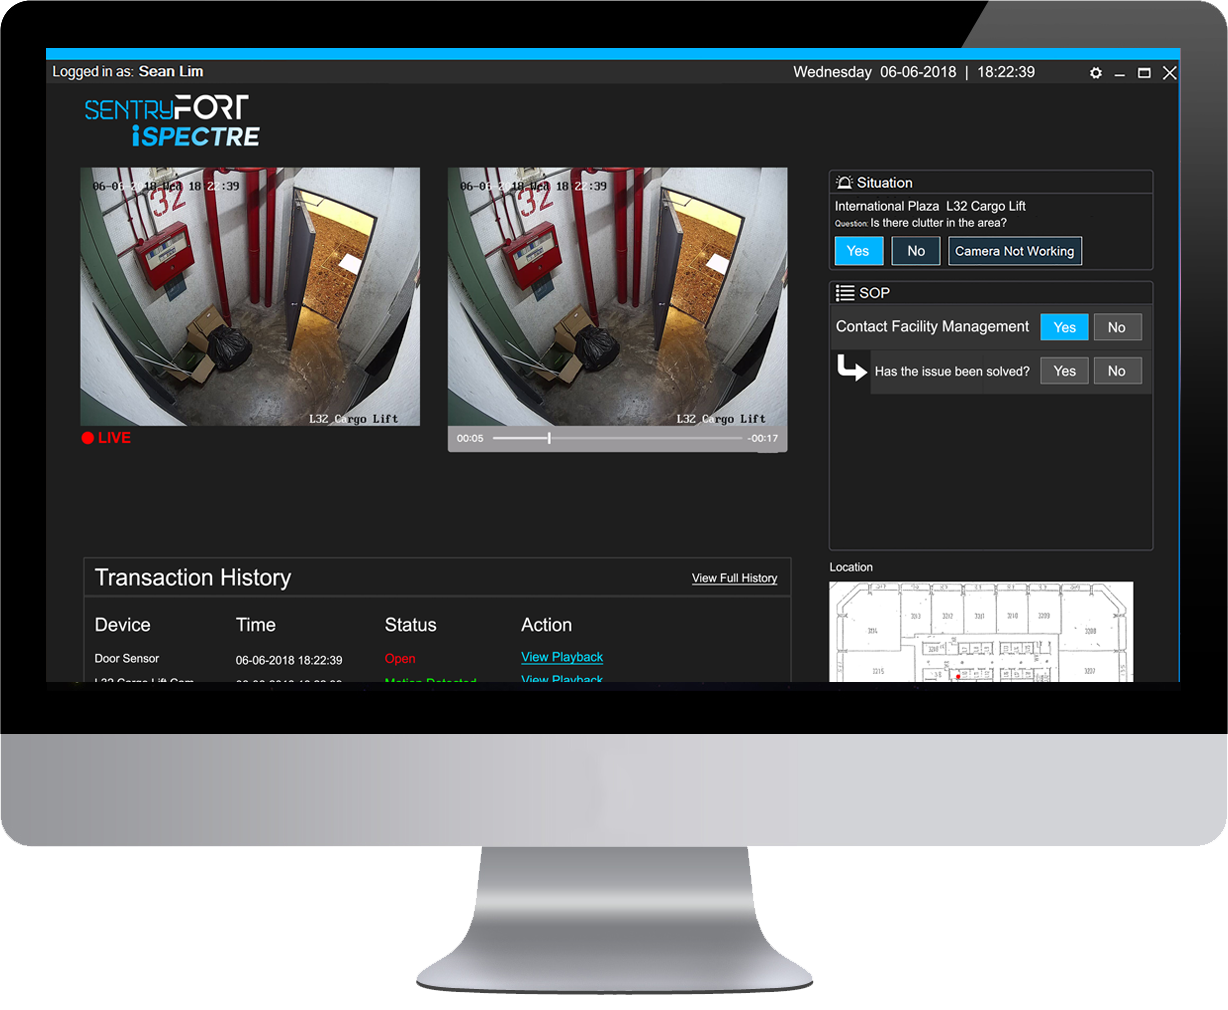 sentryfort_outcome_based_security_solutions_singapore_integrate_cctv_access_control